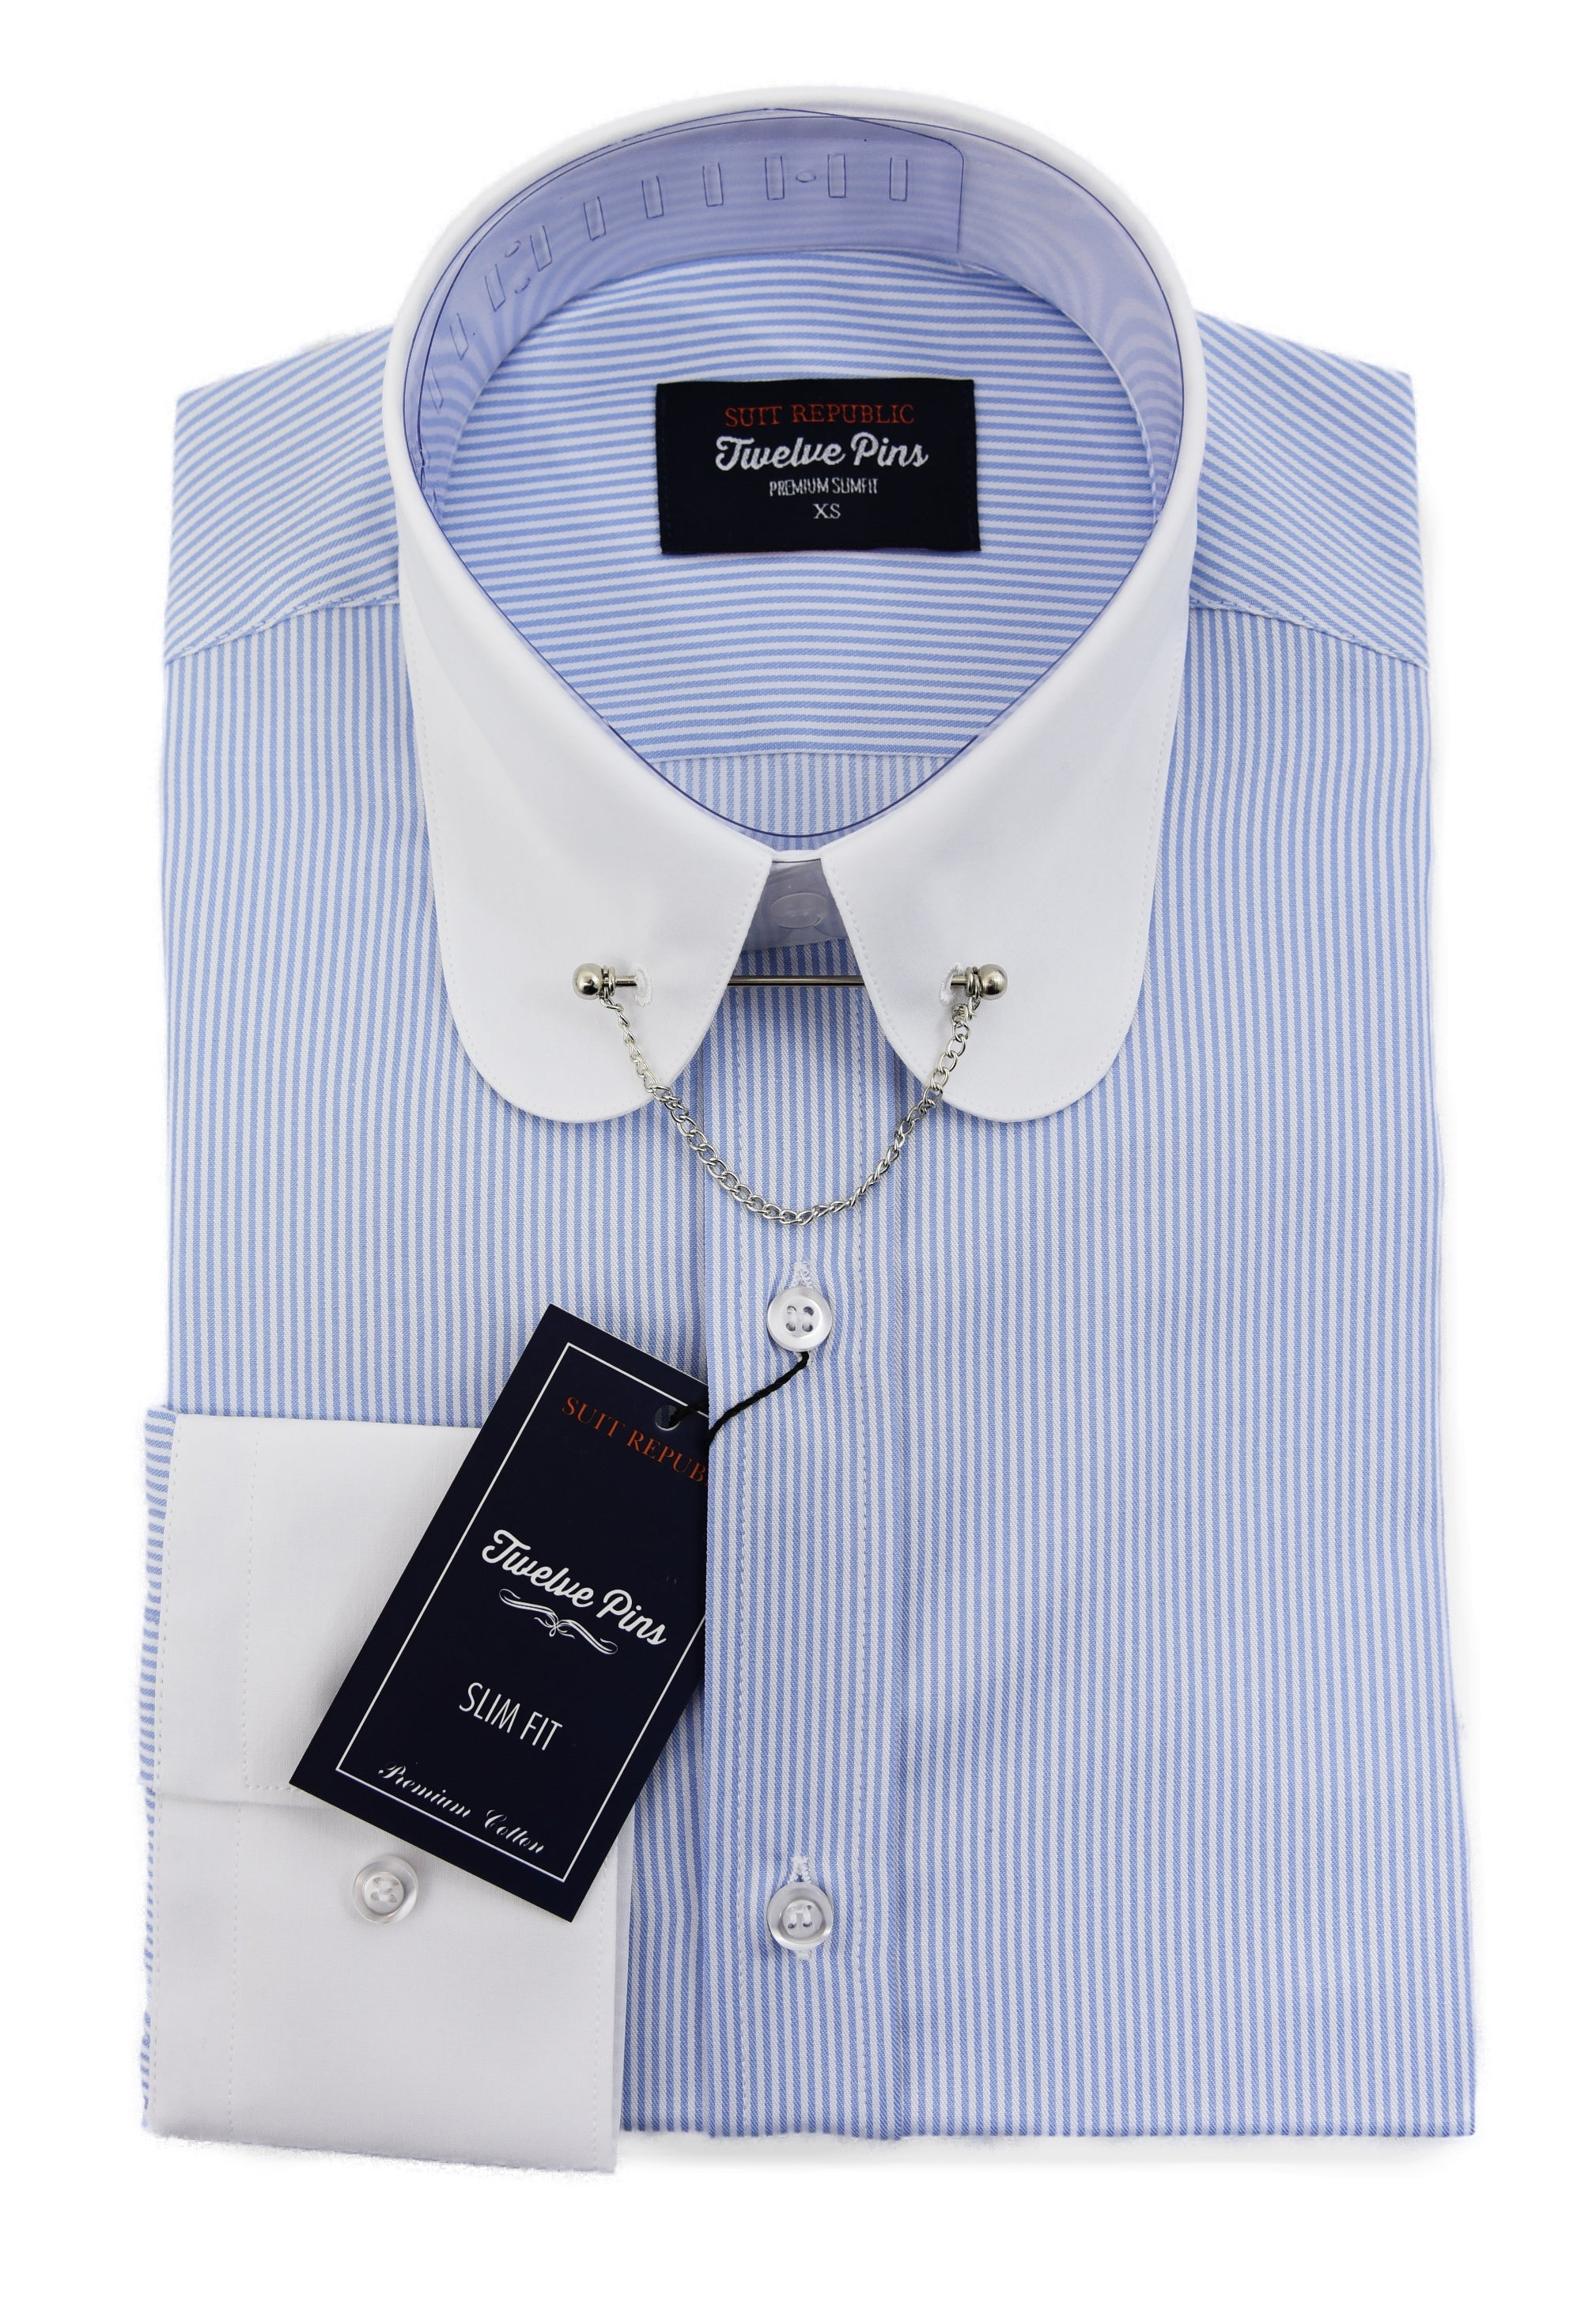 shop for original shop for fashion Muckana: Blue & White Penny Collar Slim Fit Shirt